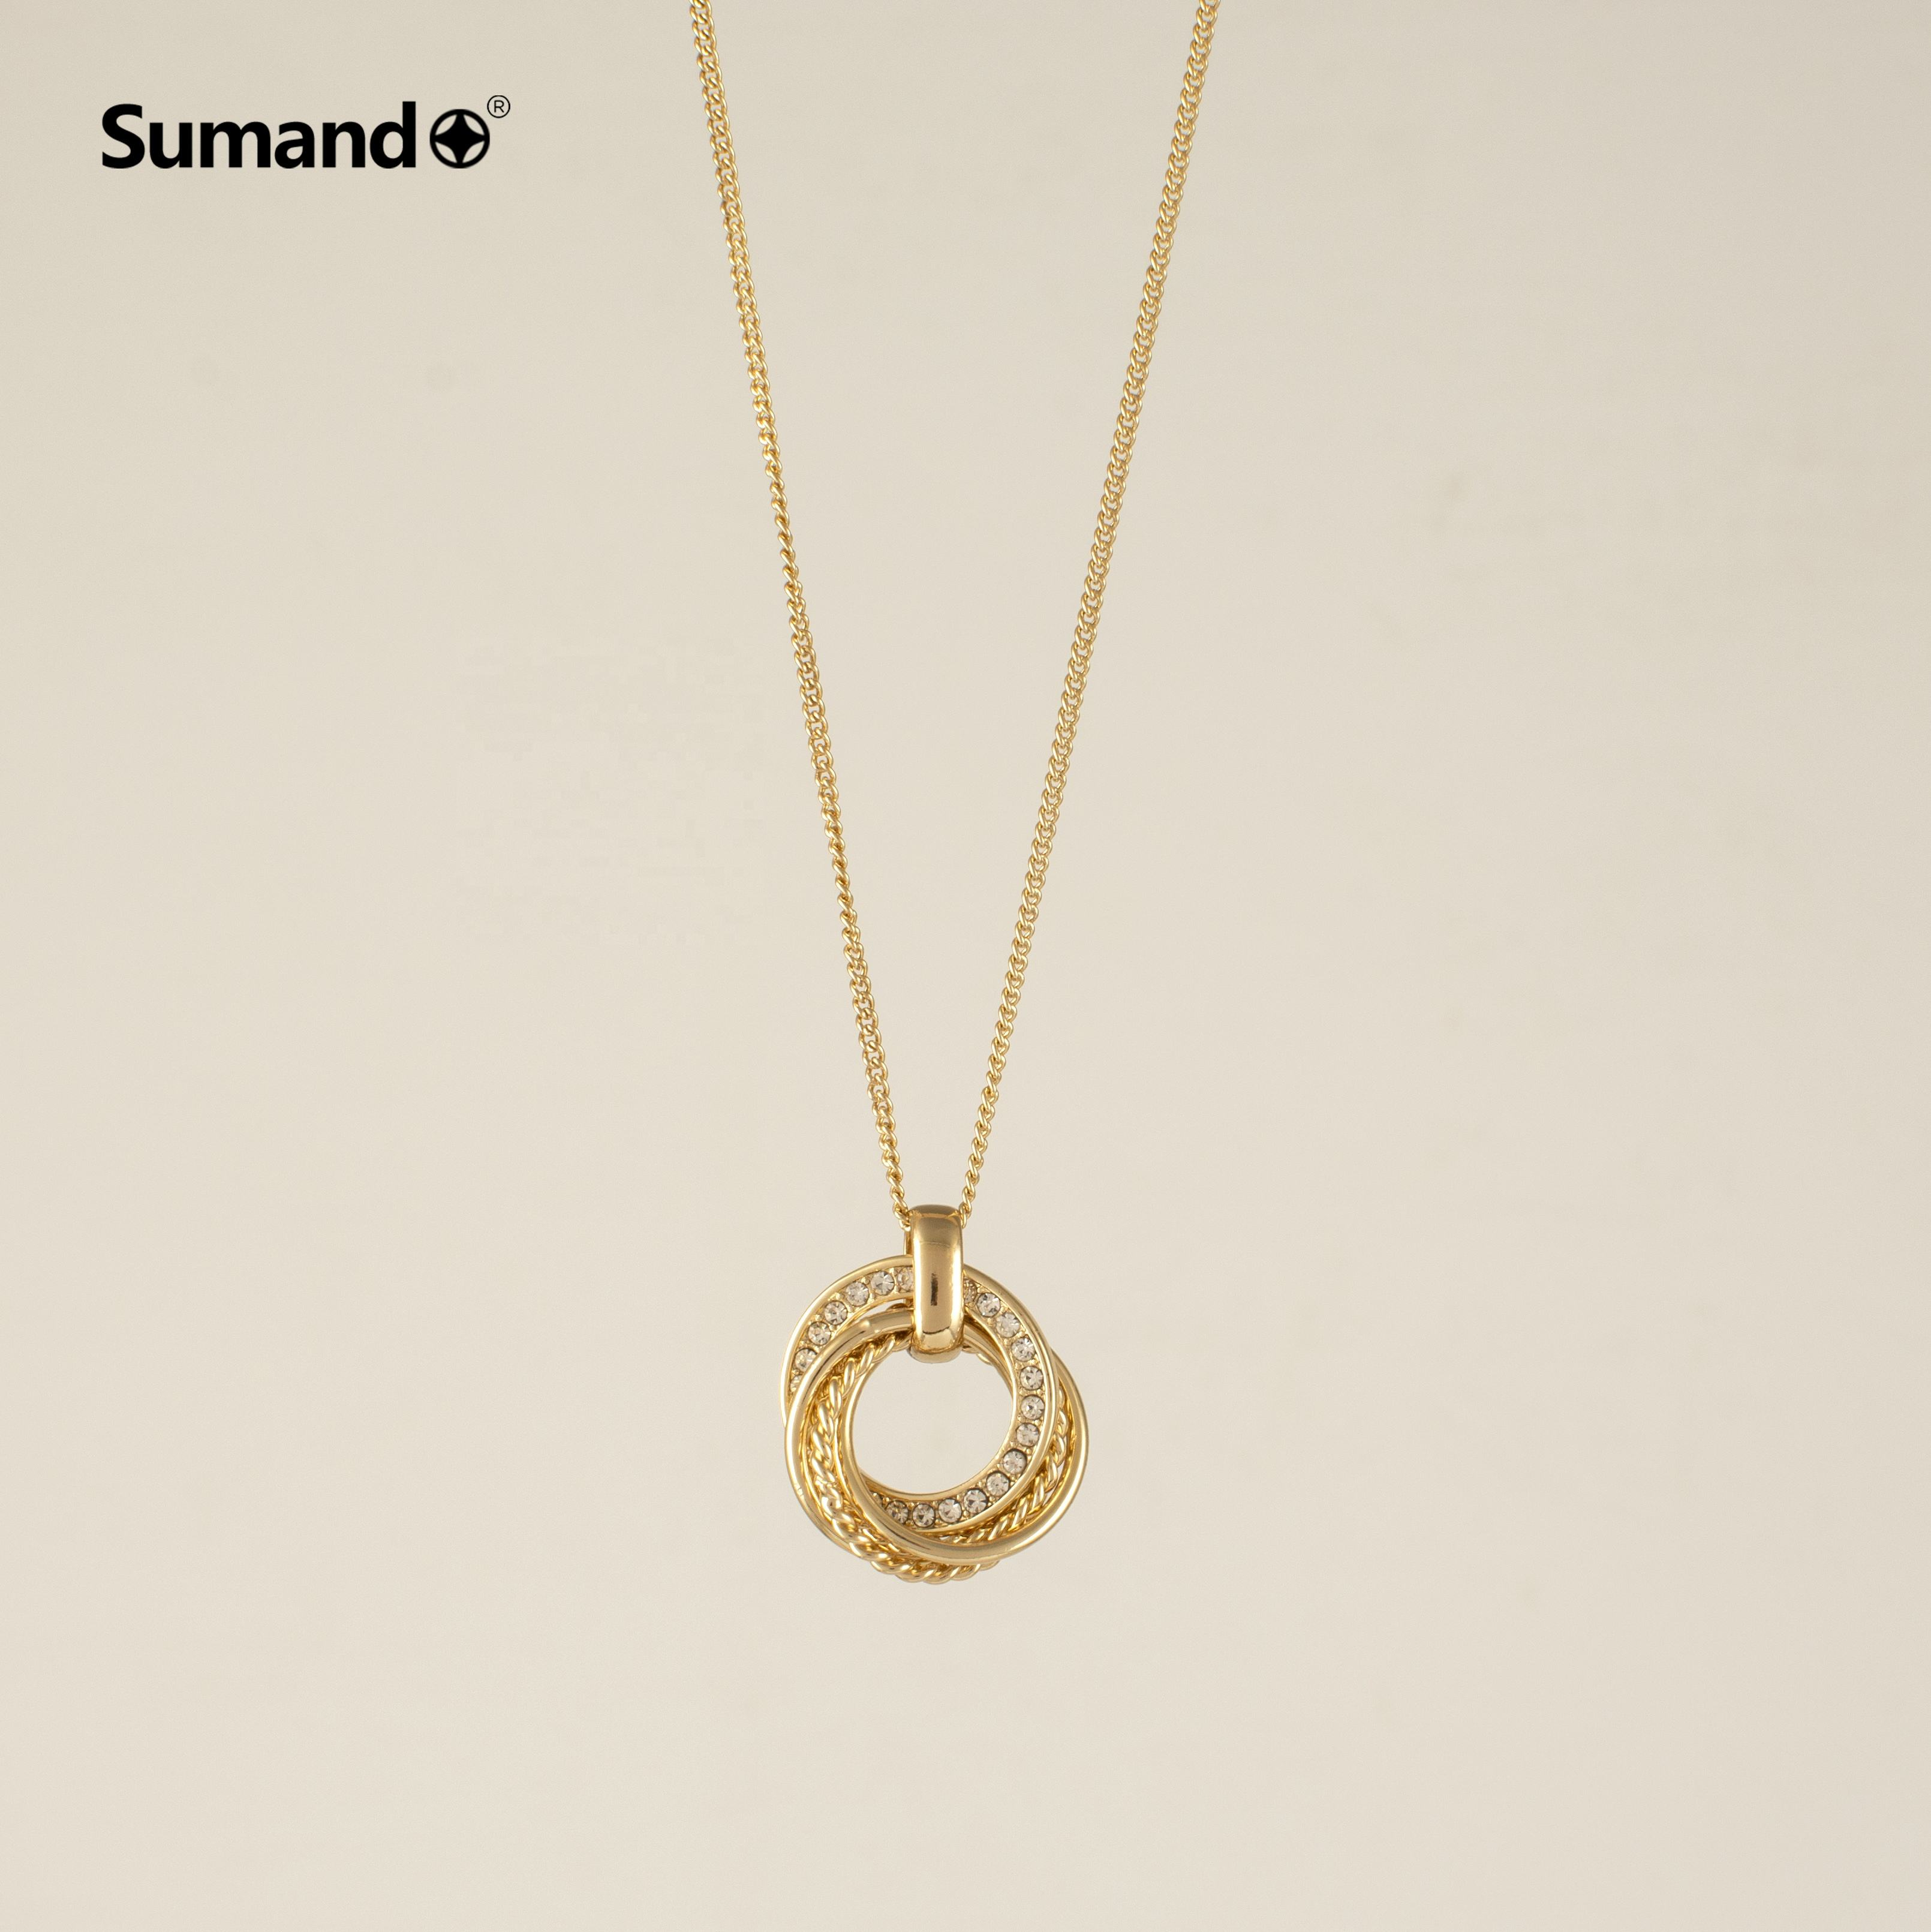 Graphic Customization Gold Necklace The Necklace Sumando Hot Sale Women Trending Twist Round Gold Chain Pendant Necklace